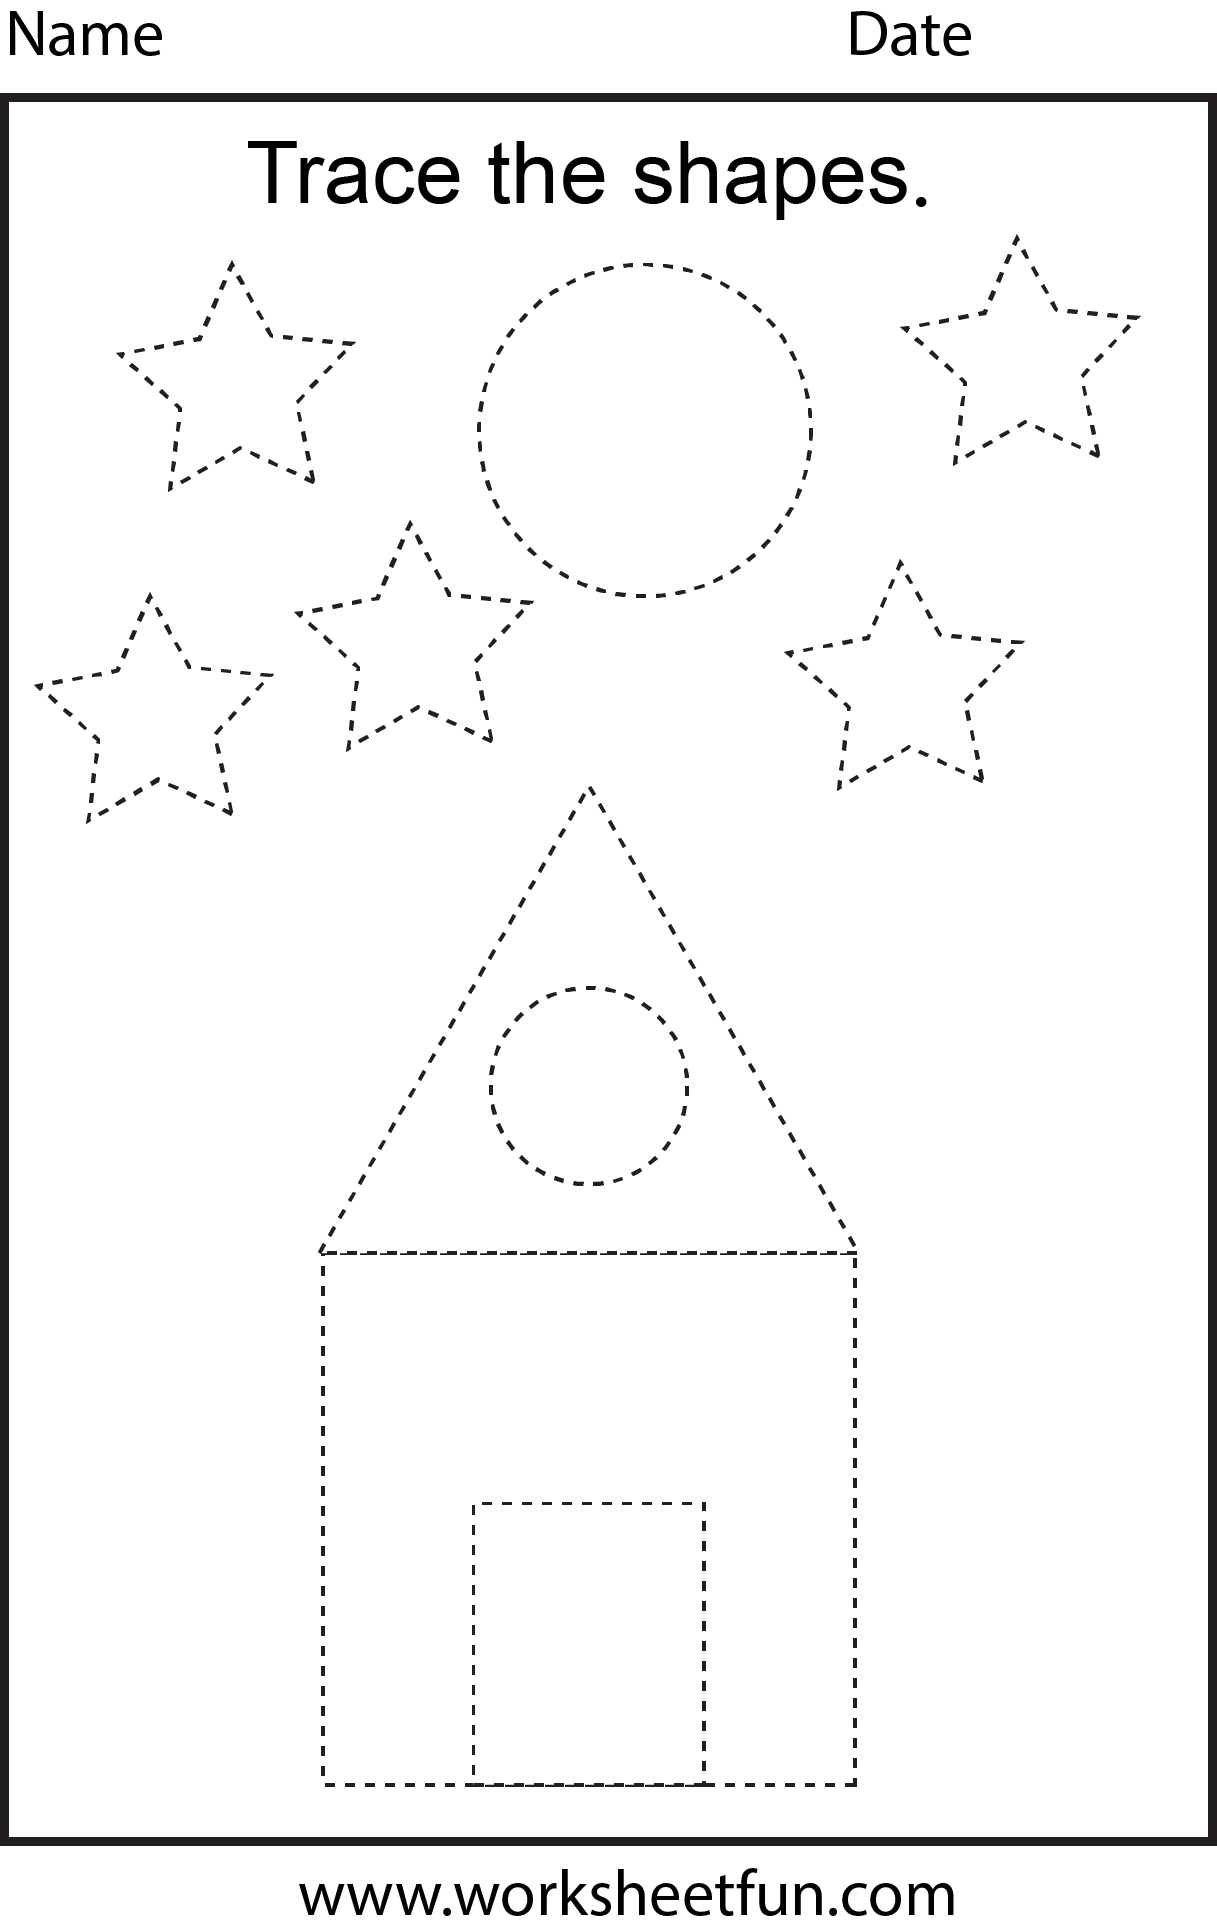 Free printable preschool worksheets - This one is trace the shapes ...